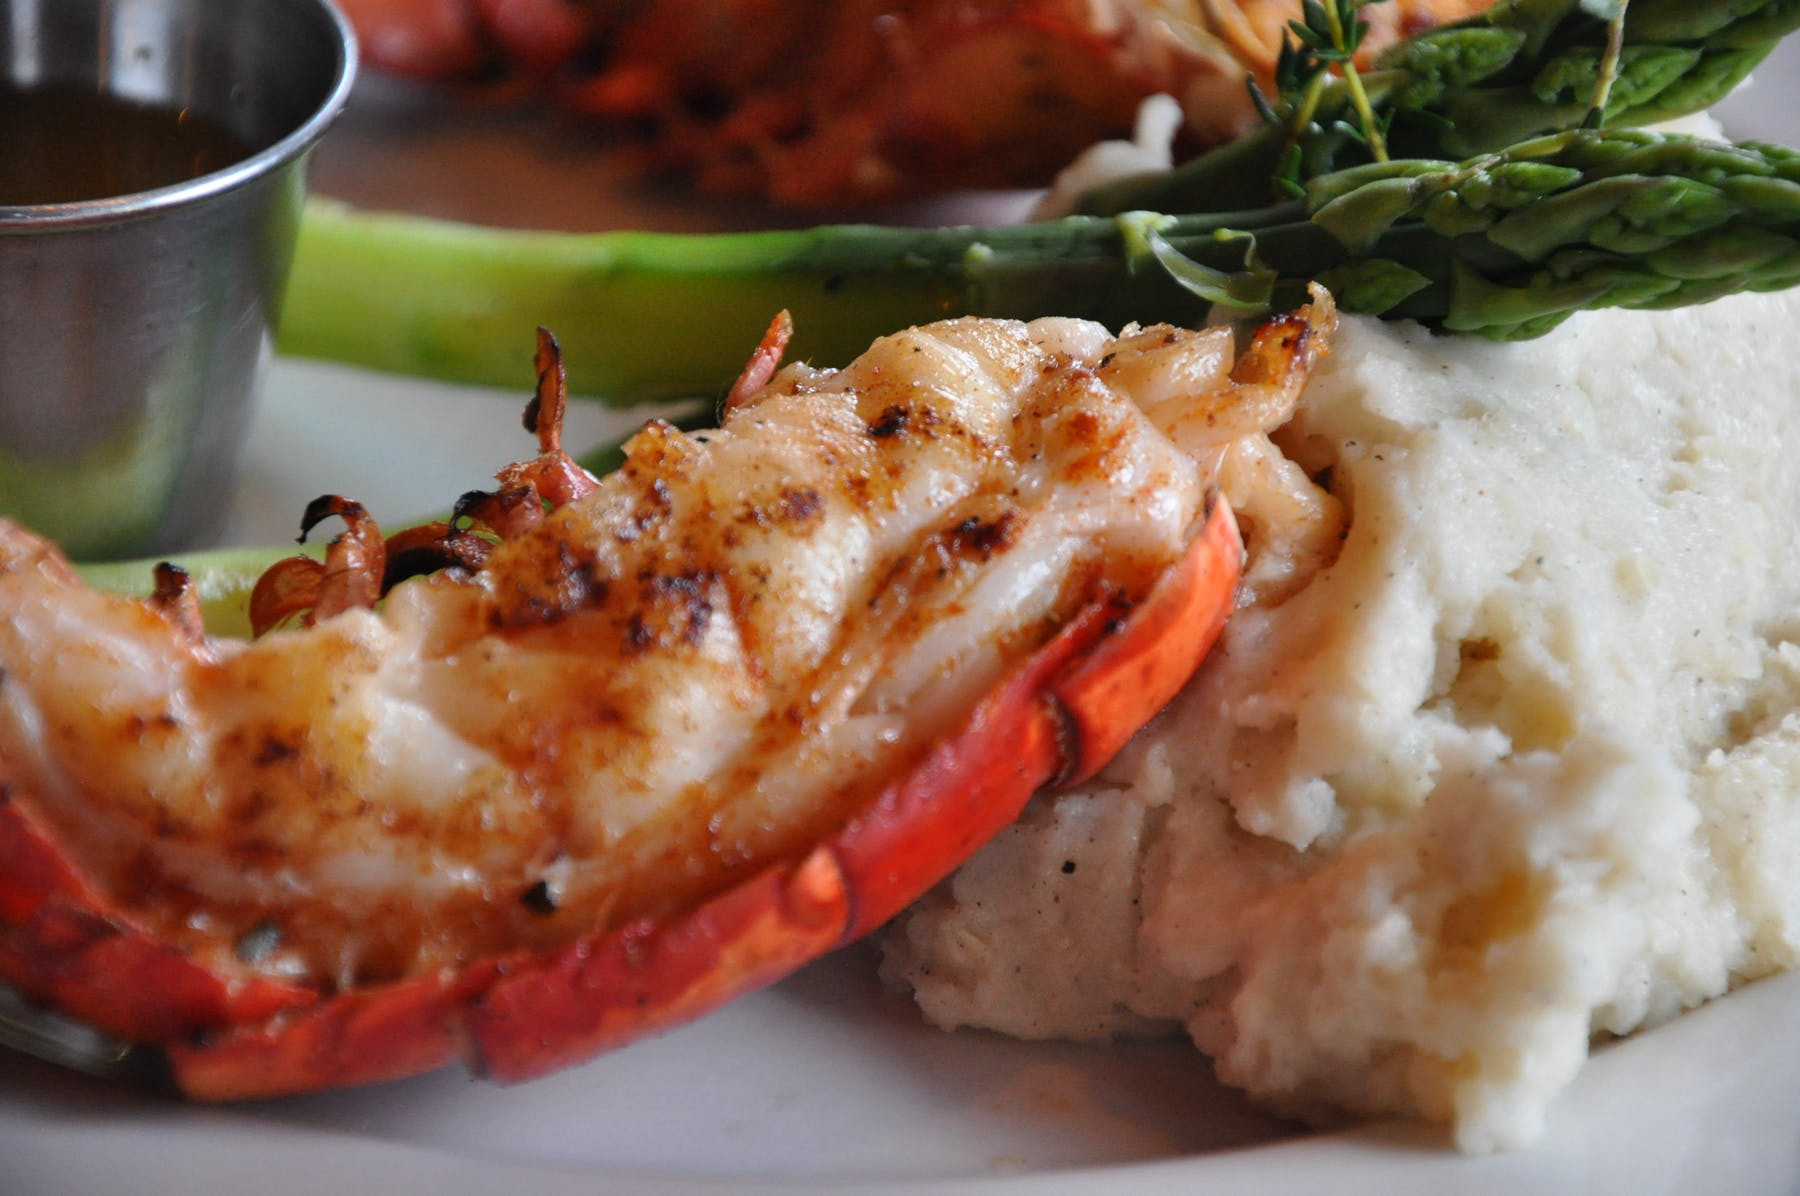 an cooked lobster sitting next to mashed potatoes